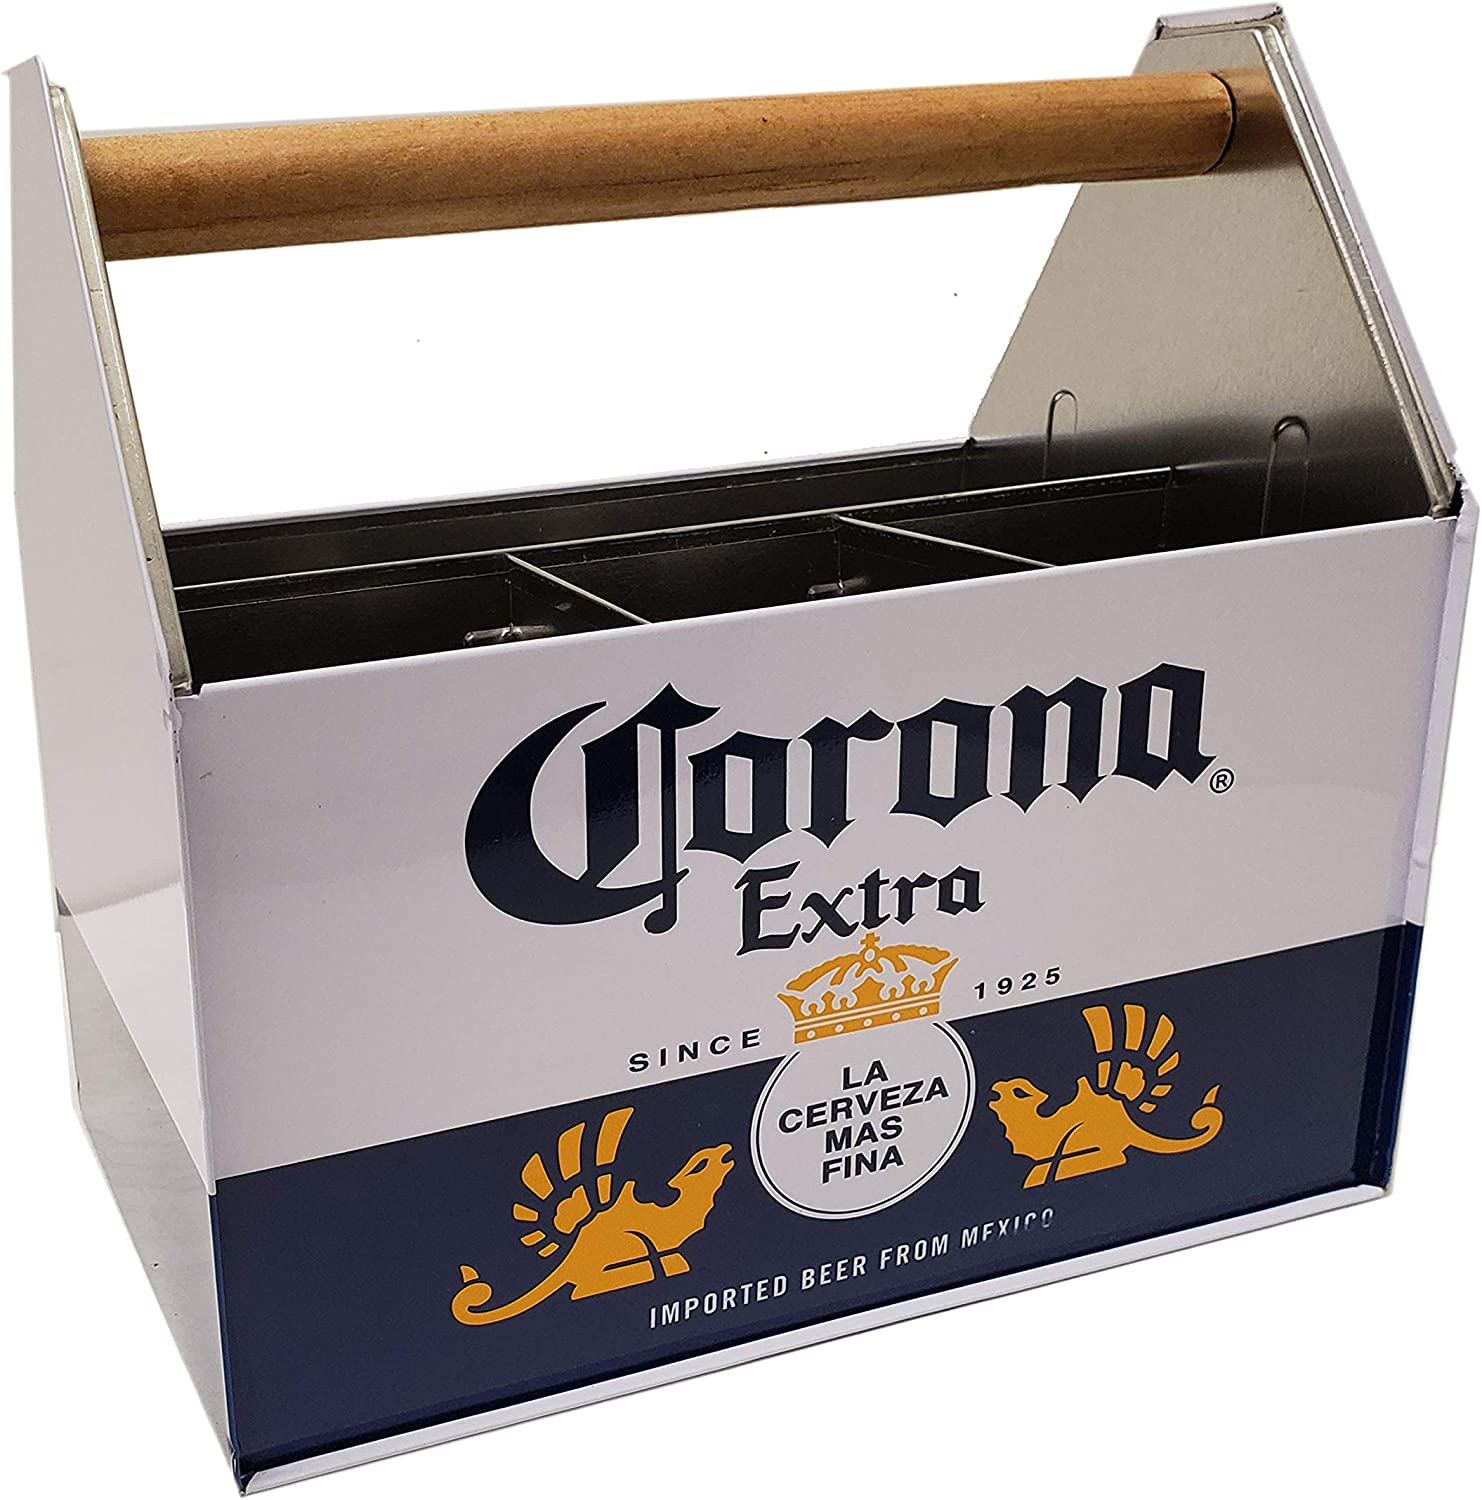 The Tin Box Corona Utensil Caddy with Handle, Black and White